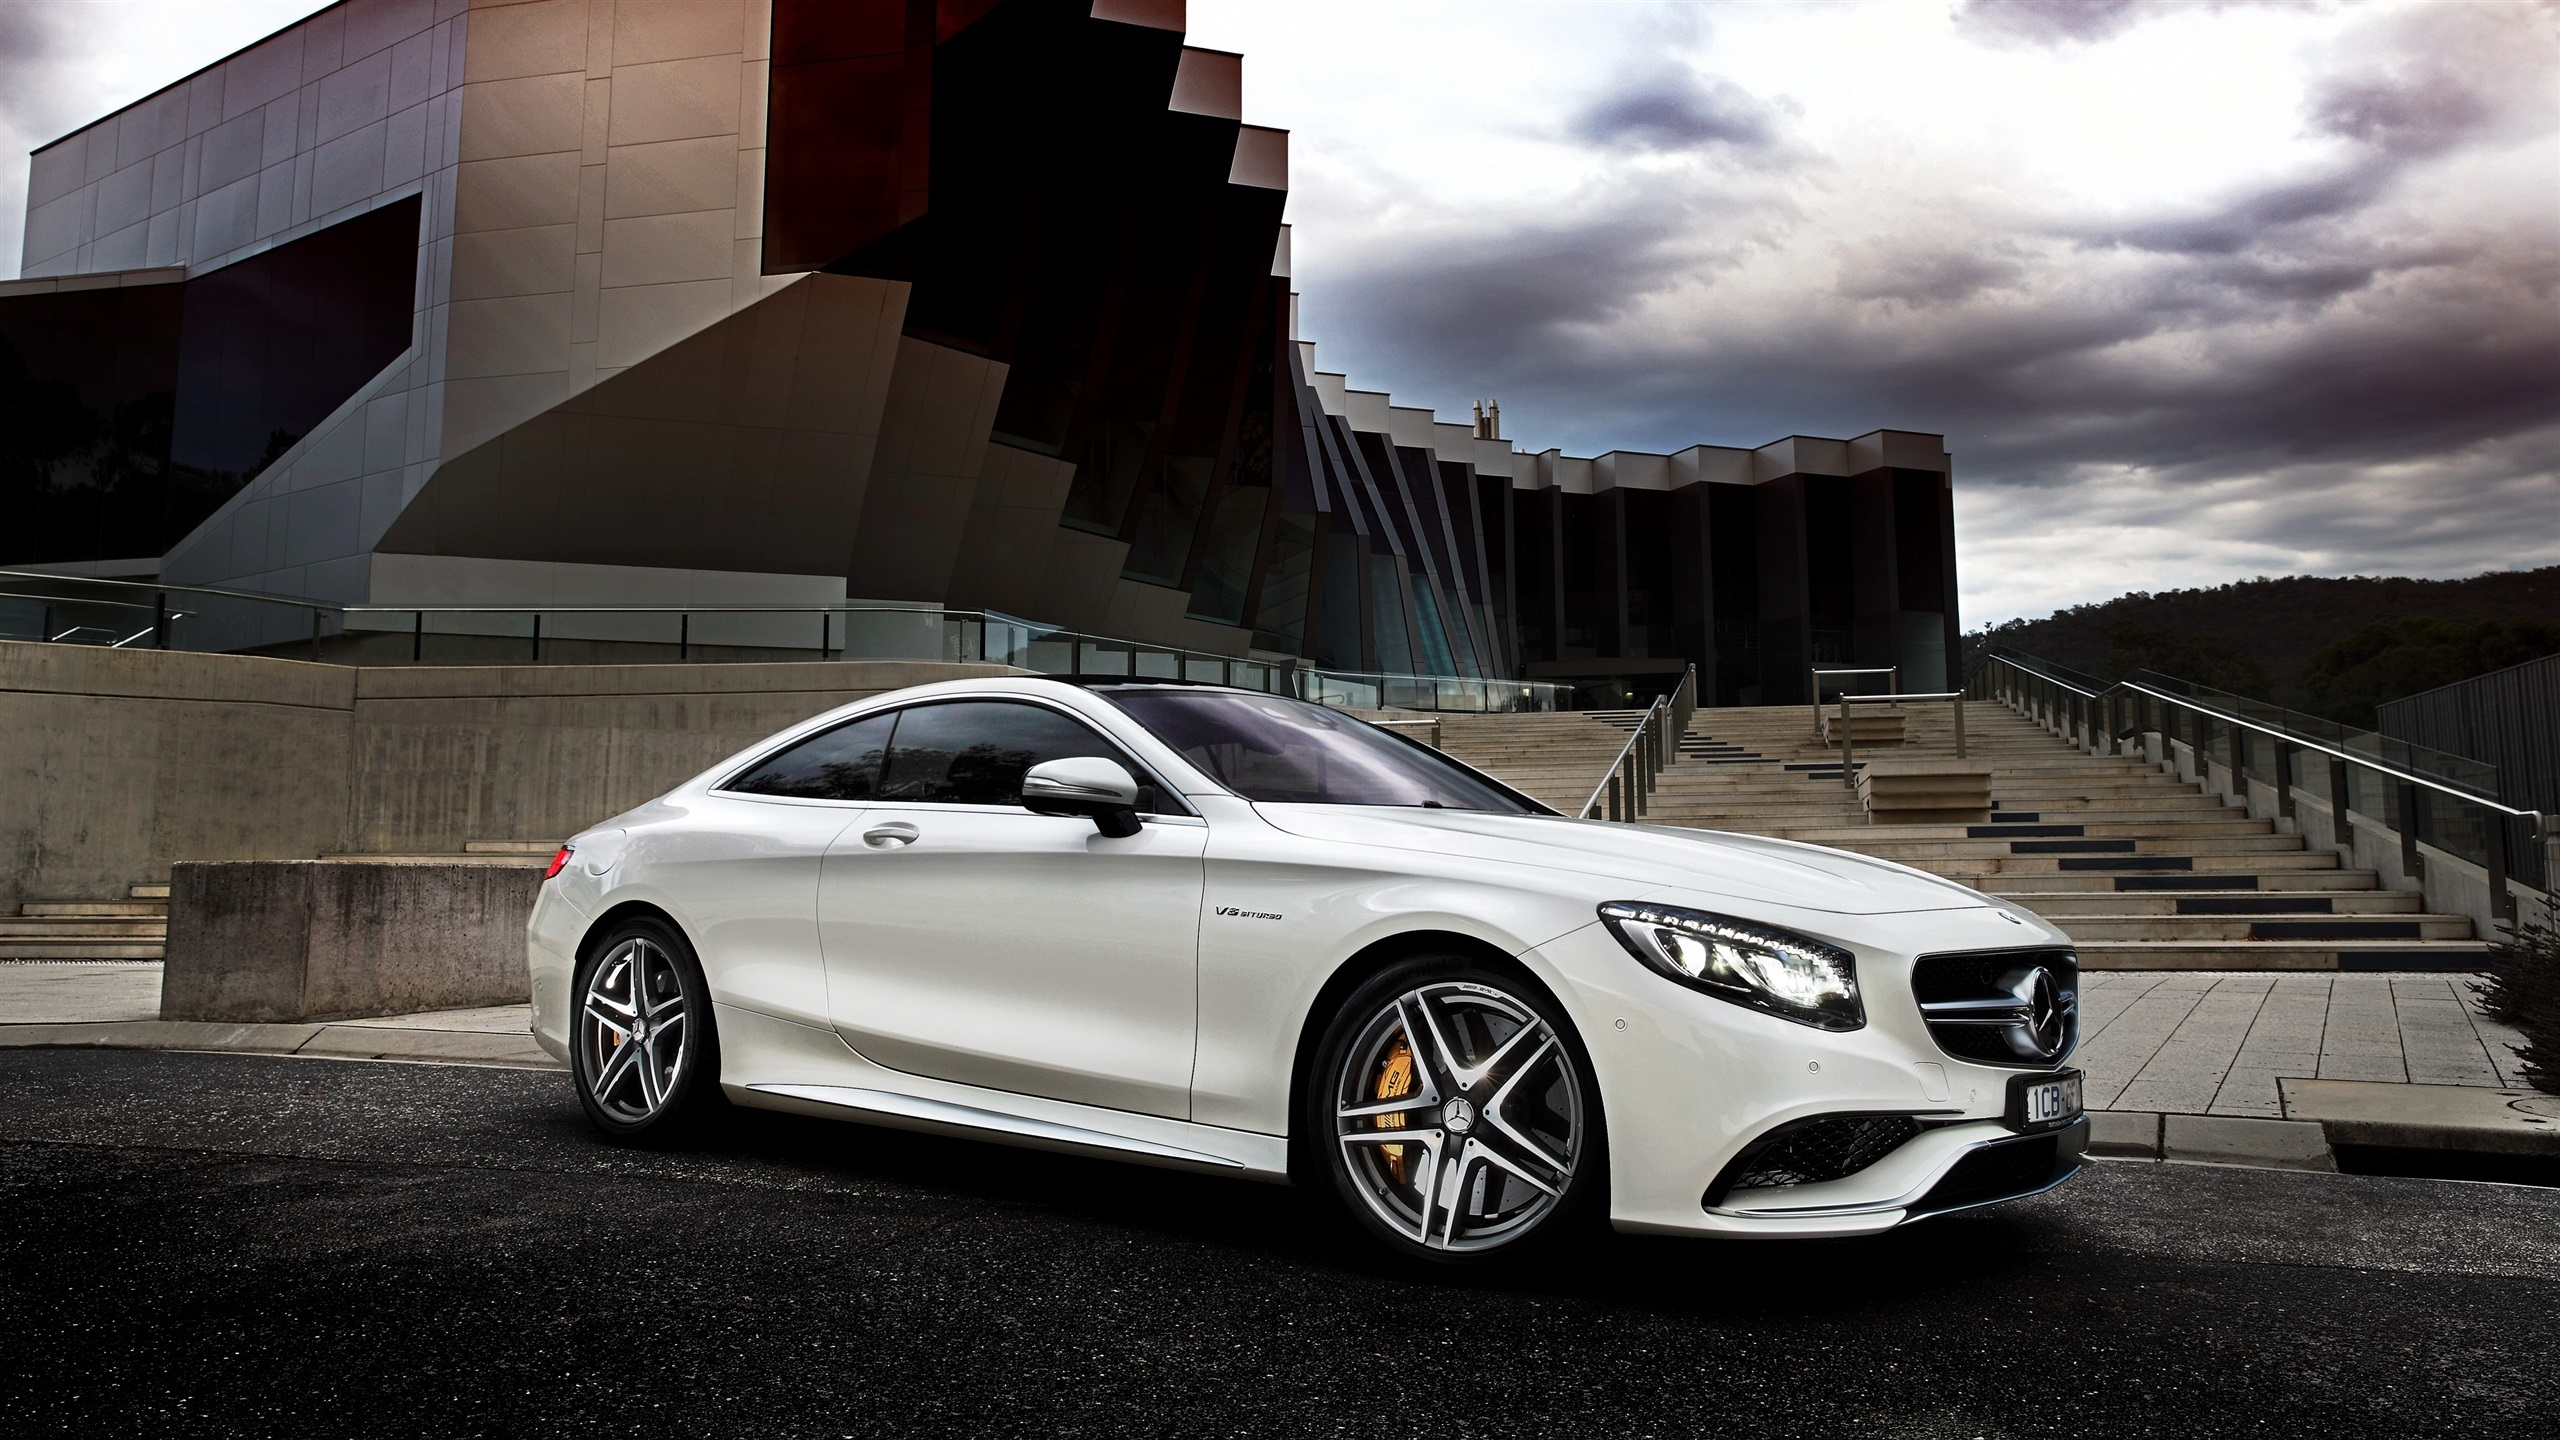 Wallpaper 2015 mercedes benz s63 amg white car side view 2560x1440 qhd picture image - Car side view wallpaper ...